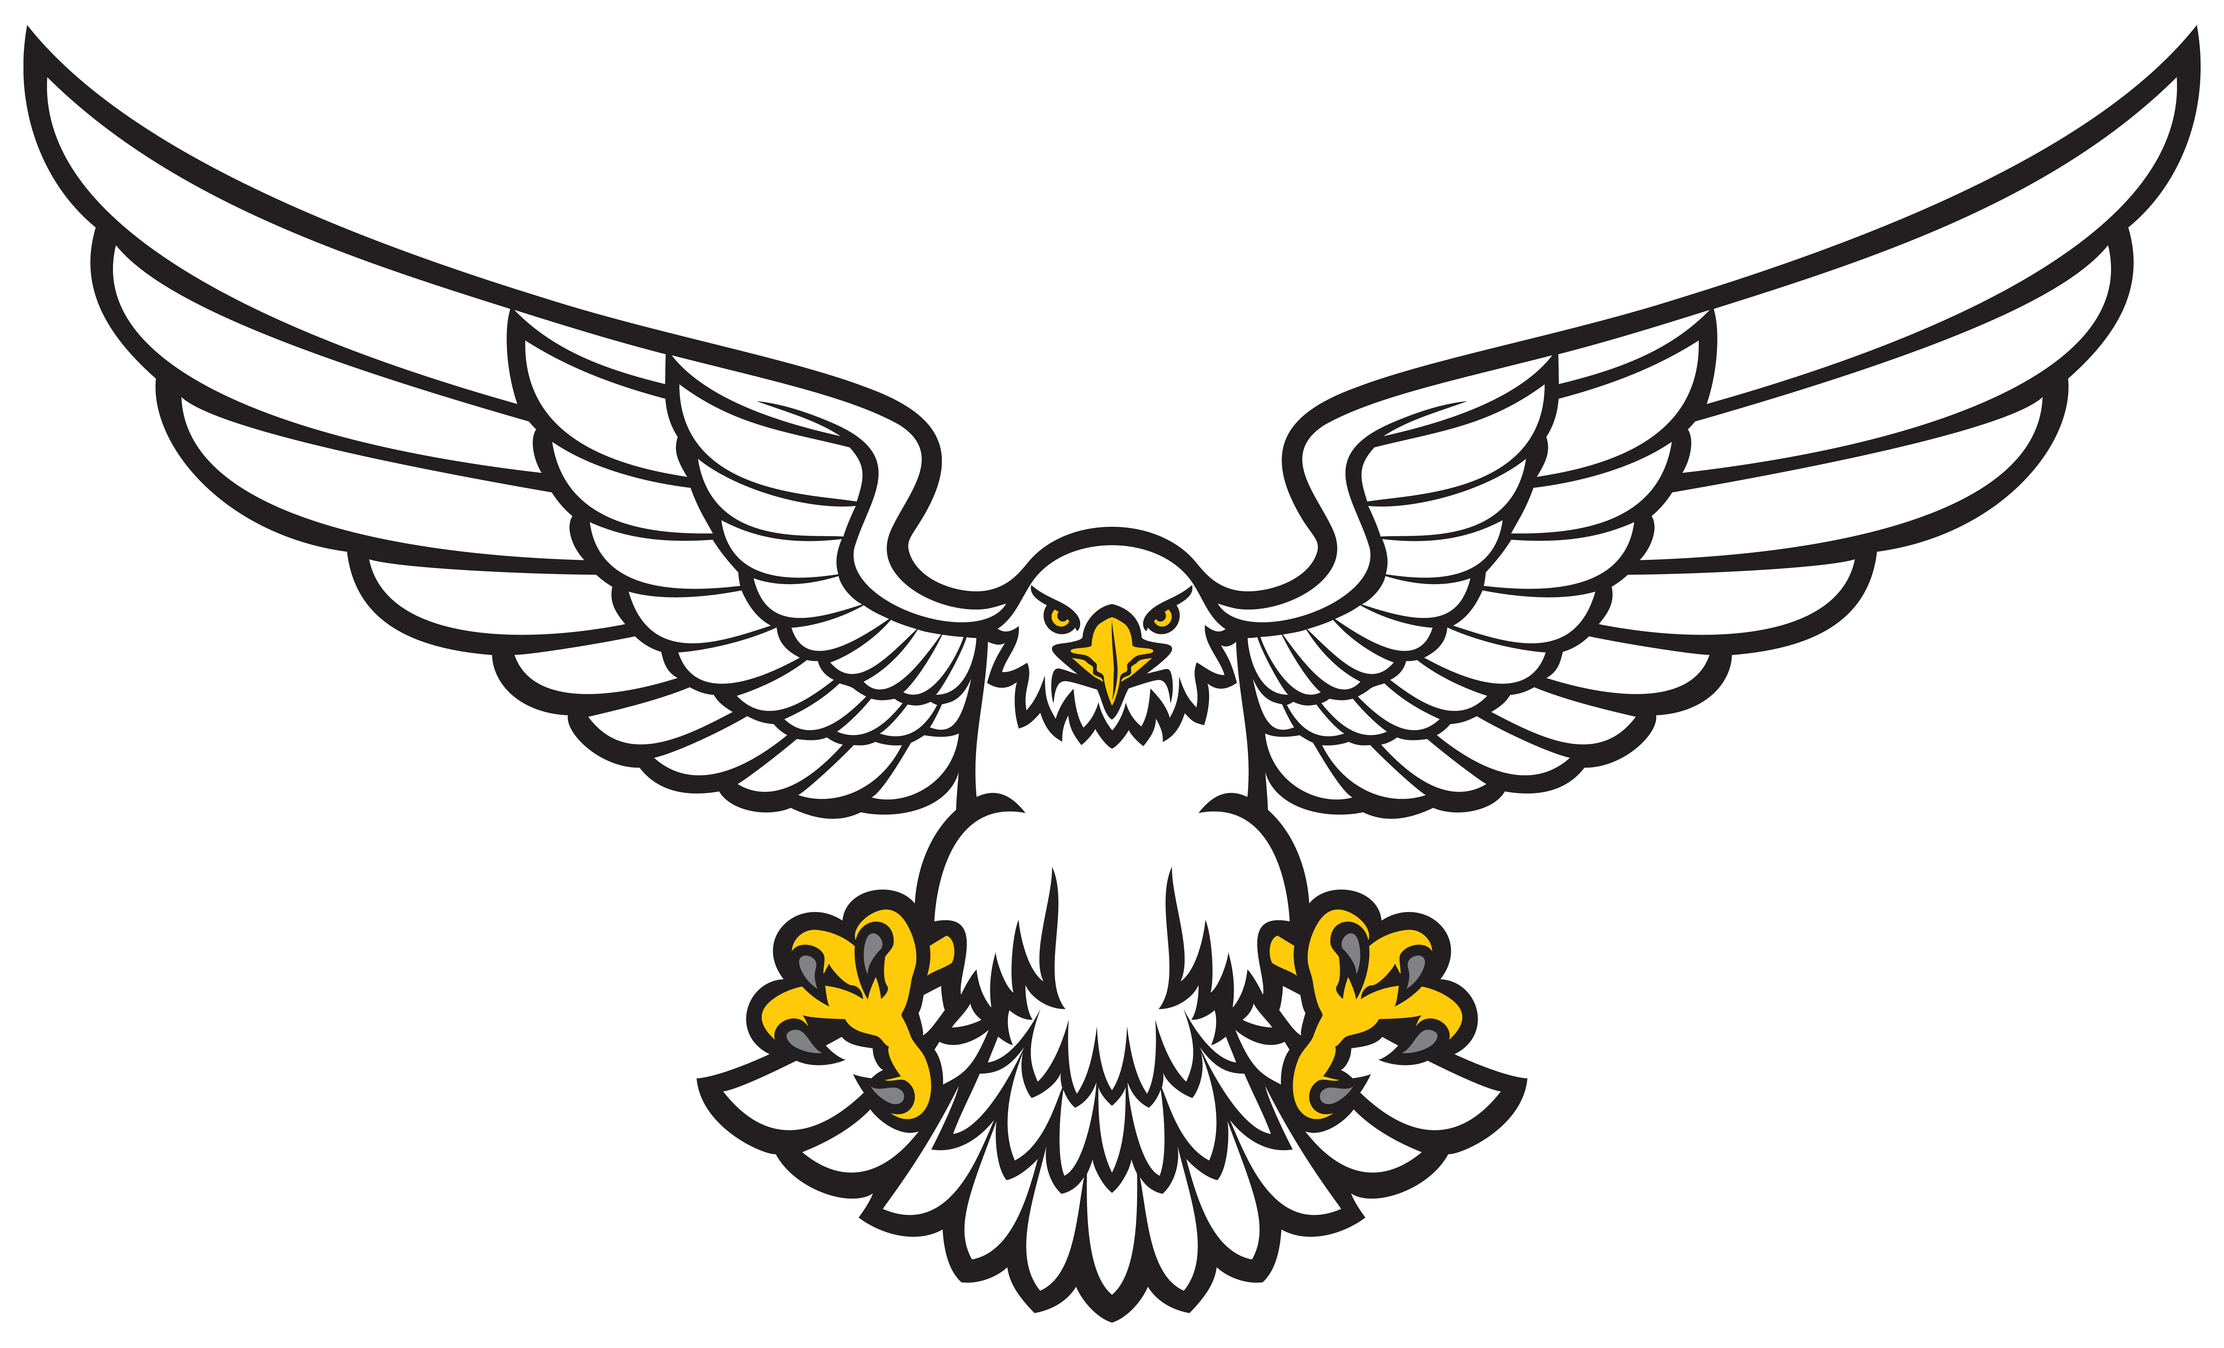 Free Cliparts Eagle Drawing, Download Free Clip Art, Free Clip Art.